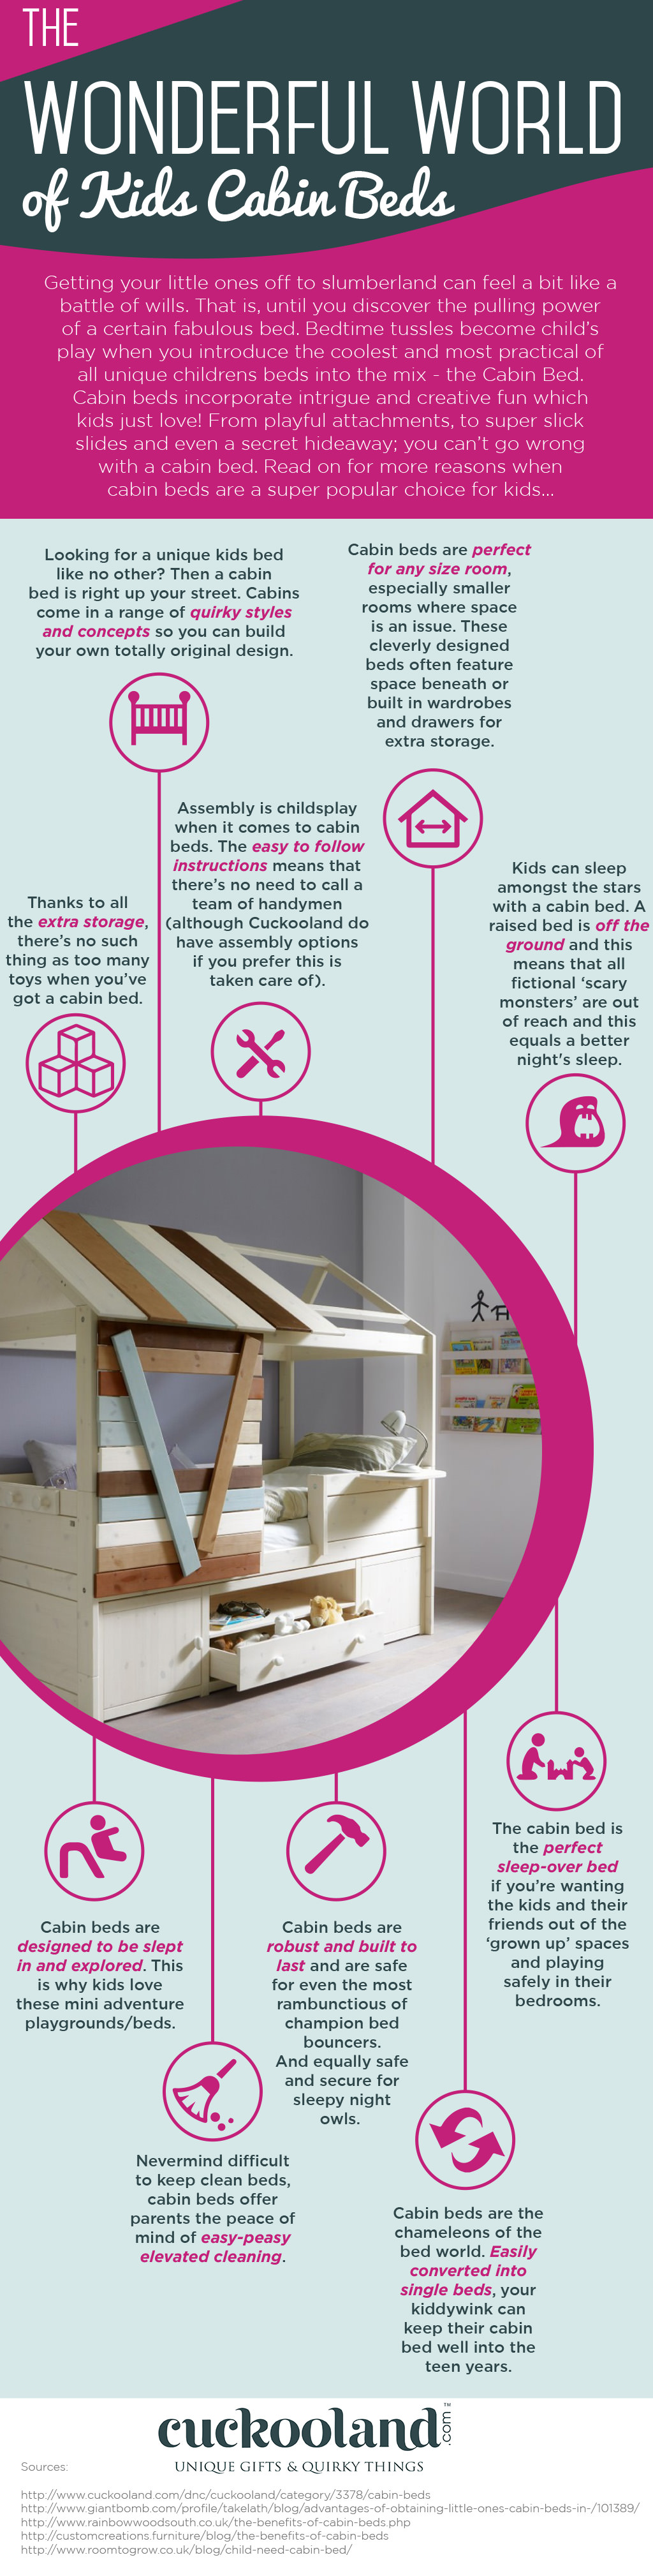 benefits of cabin beds for kids infographic